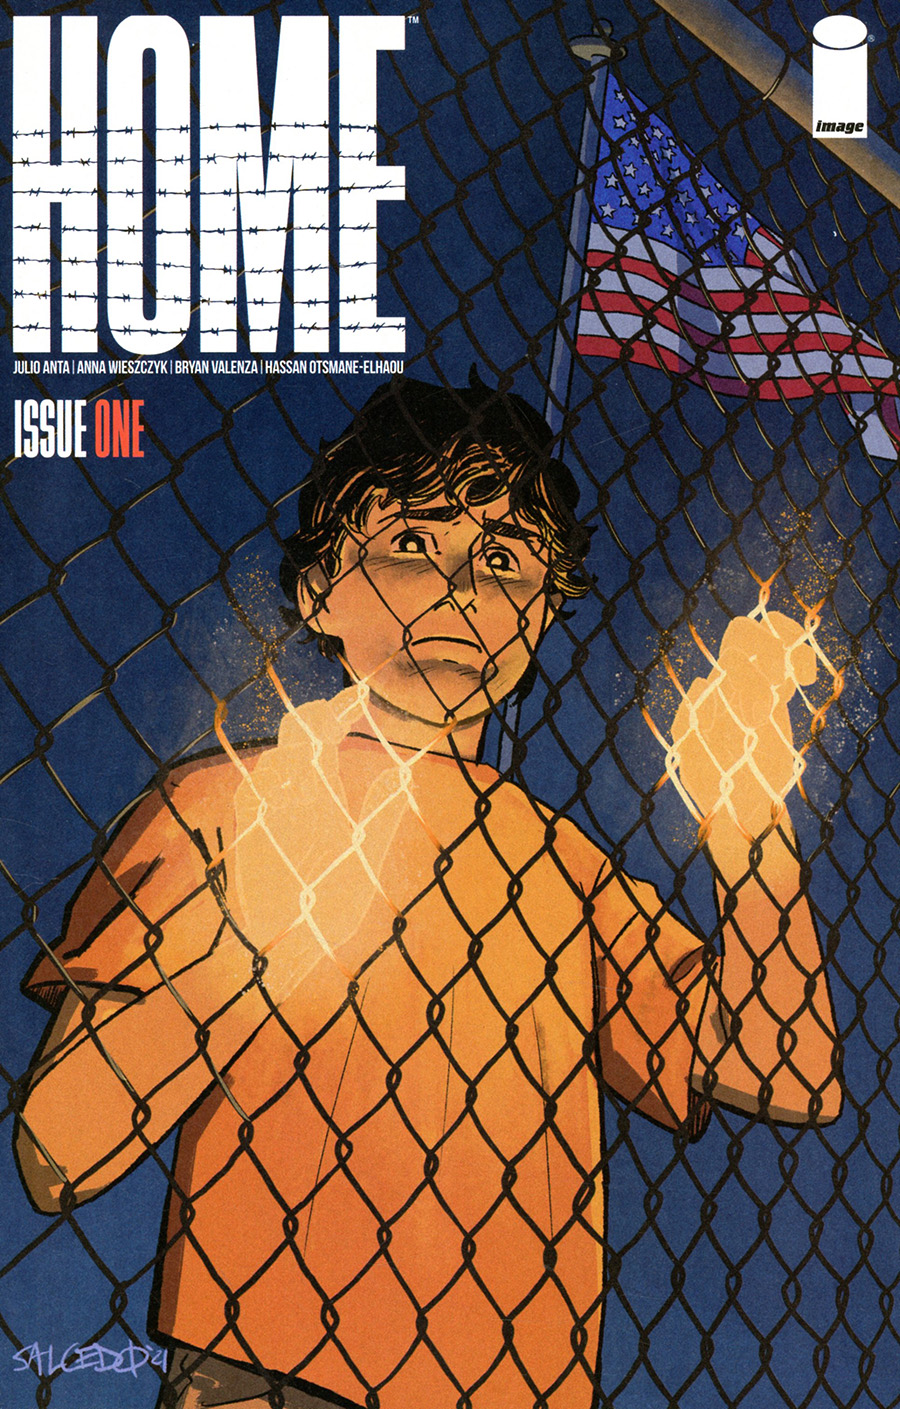 Home (Image Comics) #1 Cover B Variant Jacoby Salcedo Cover